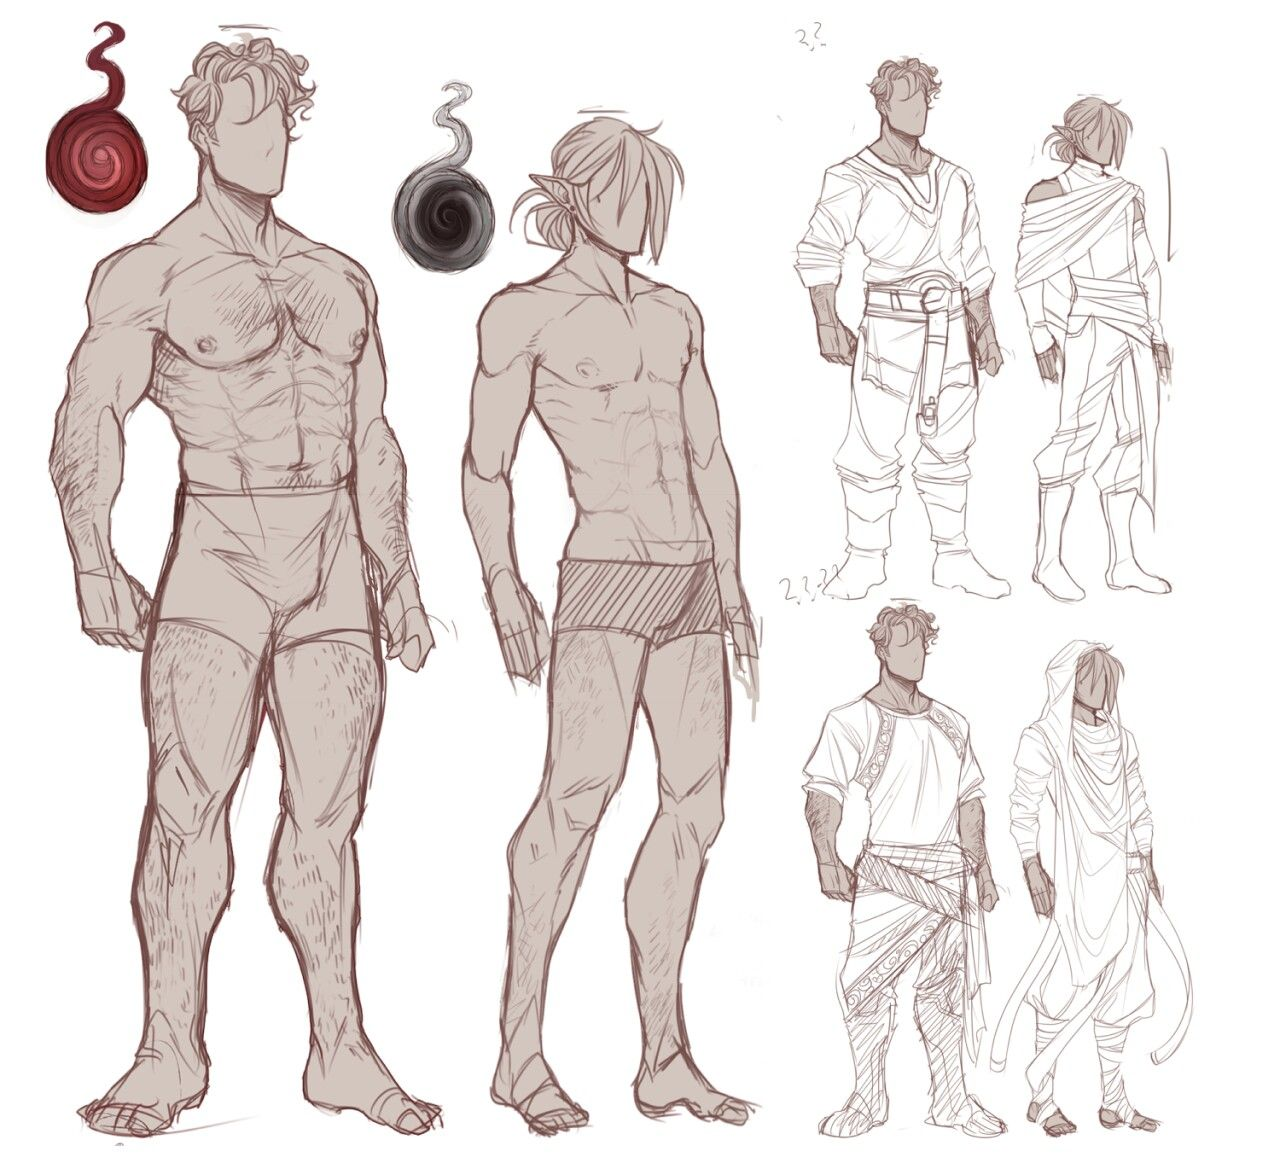 Pin By Martine Montfleury On Art Reference Body Reference Drawing Character Design Male Body Type Drawing